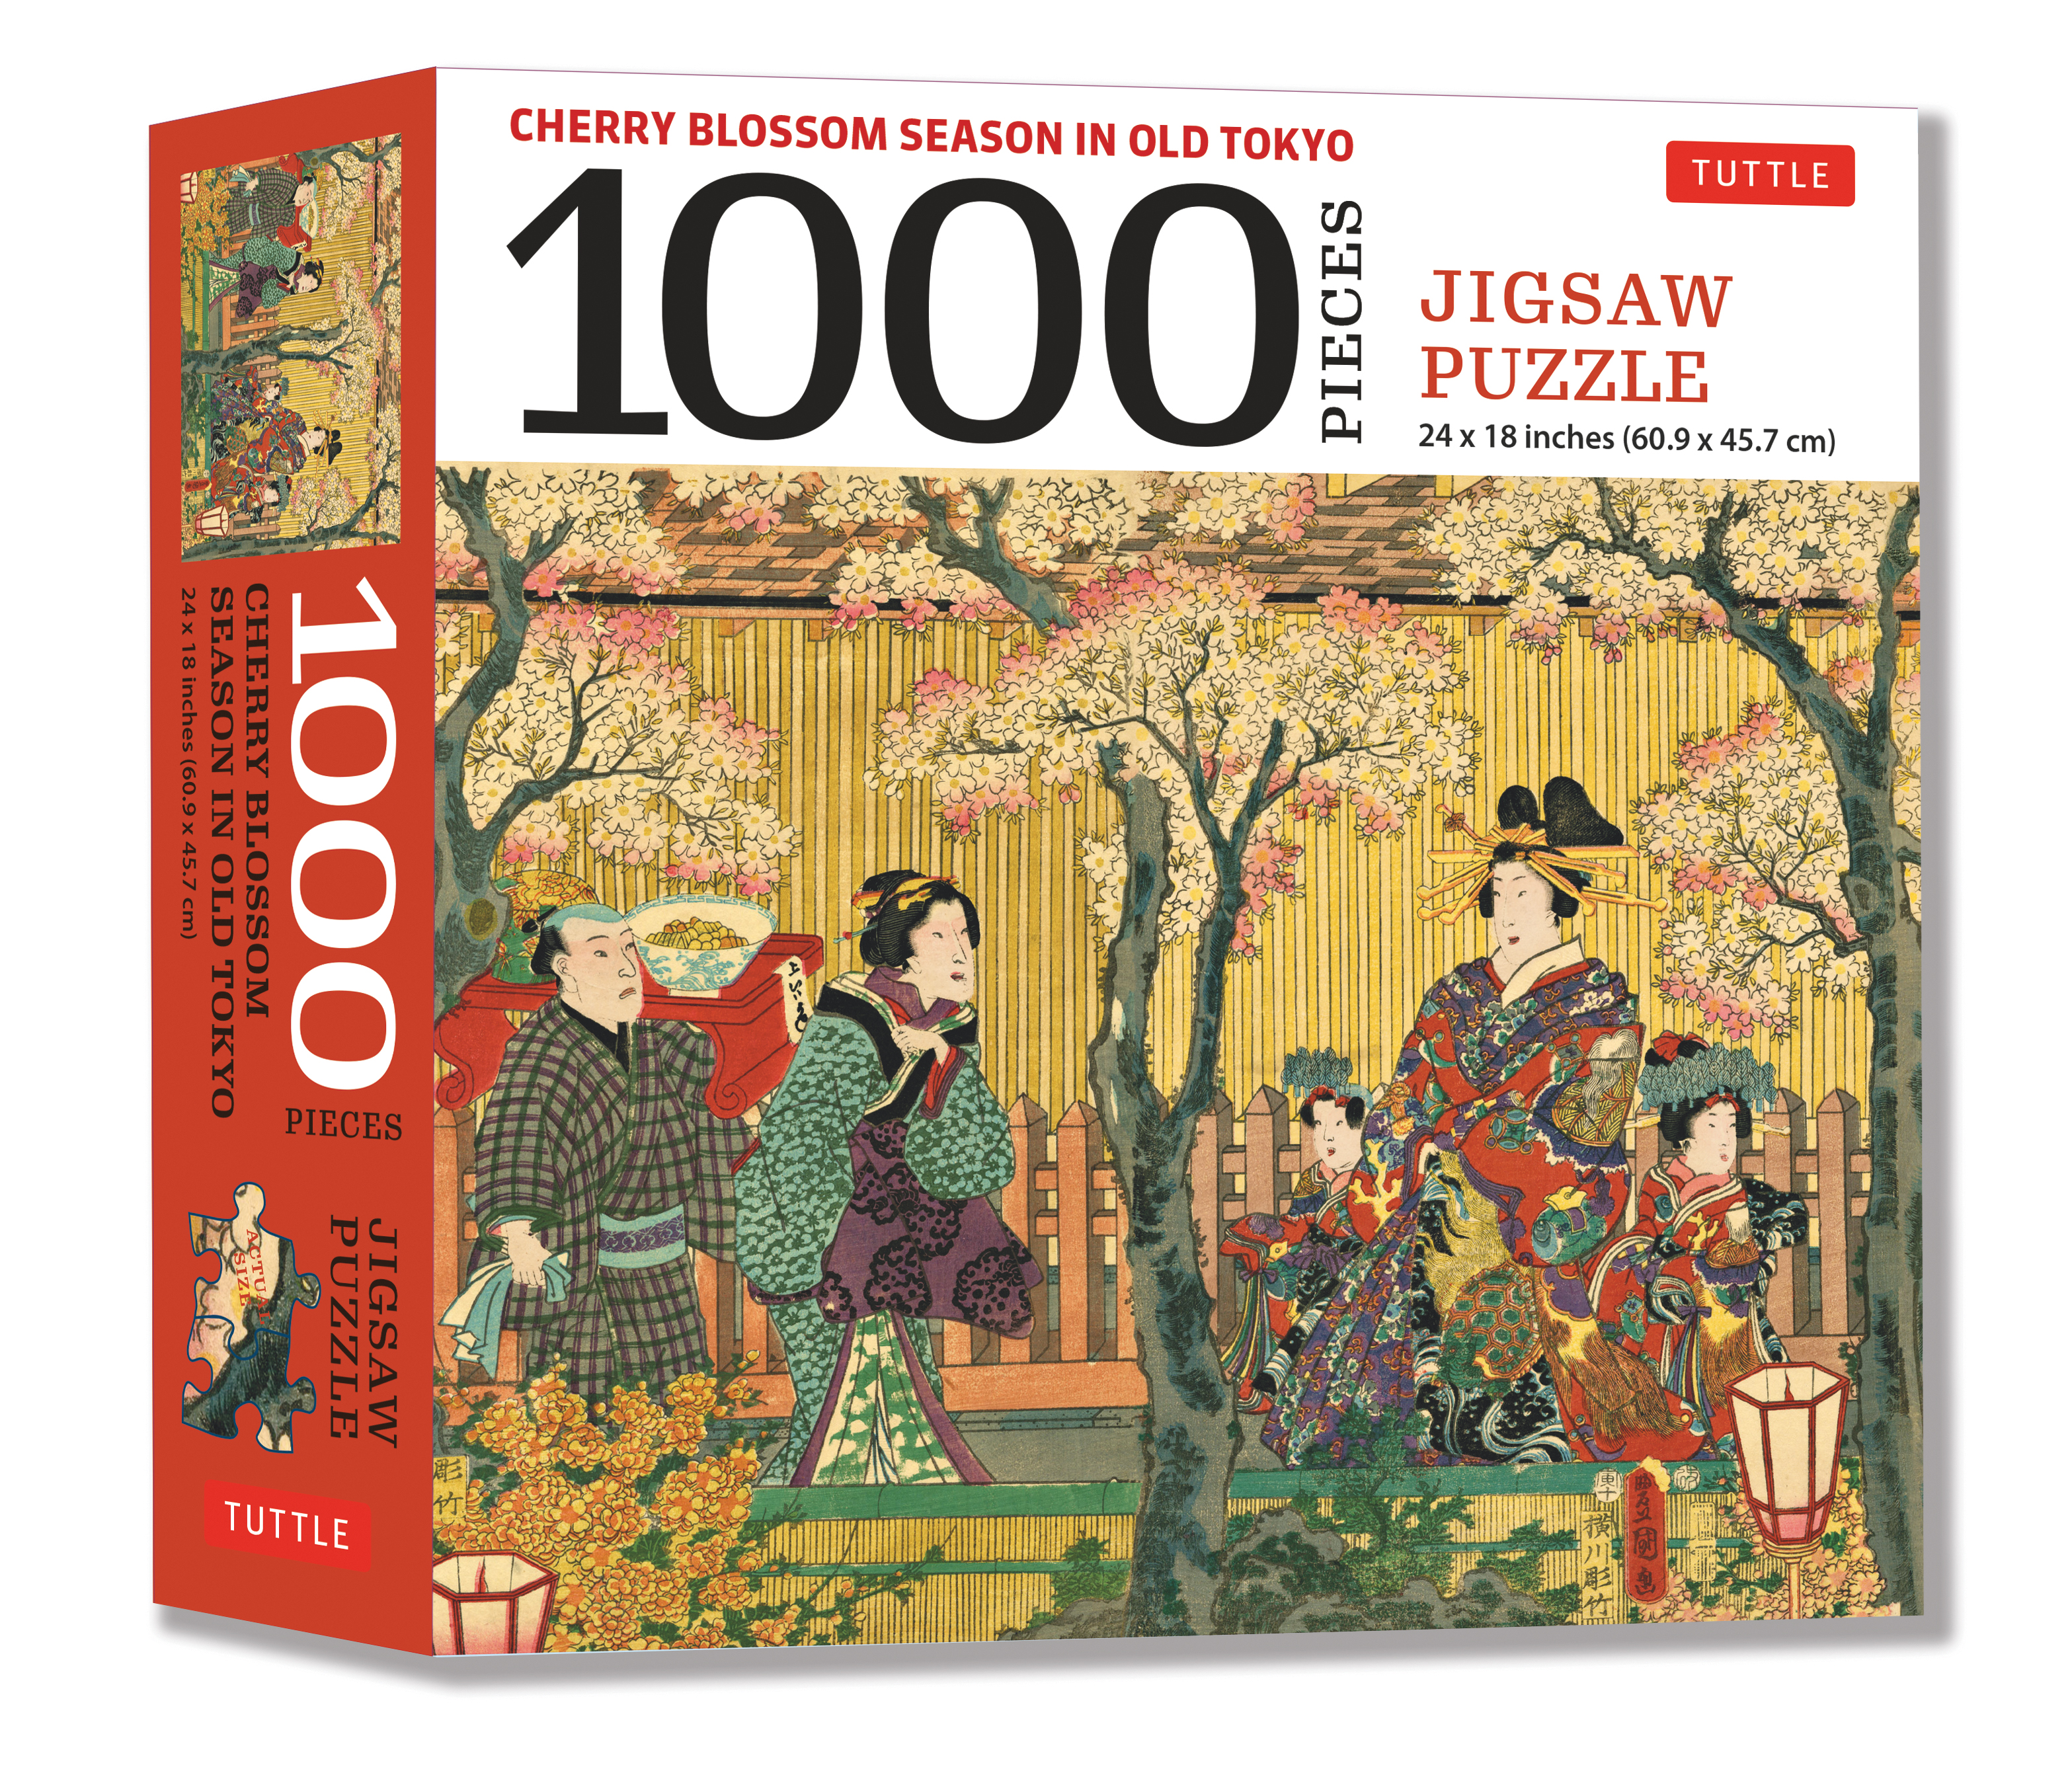 Cherry Blossom Season in Old Tokyo Jigsaw Puzzle 1,000 piece